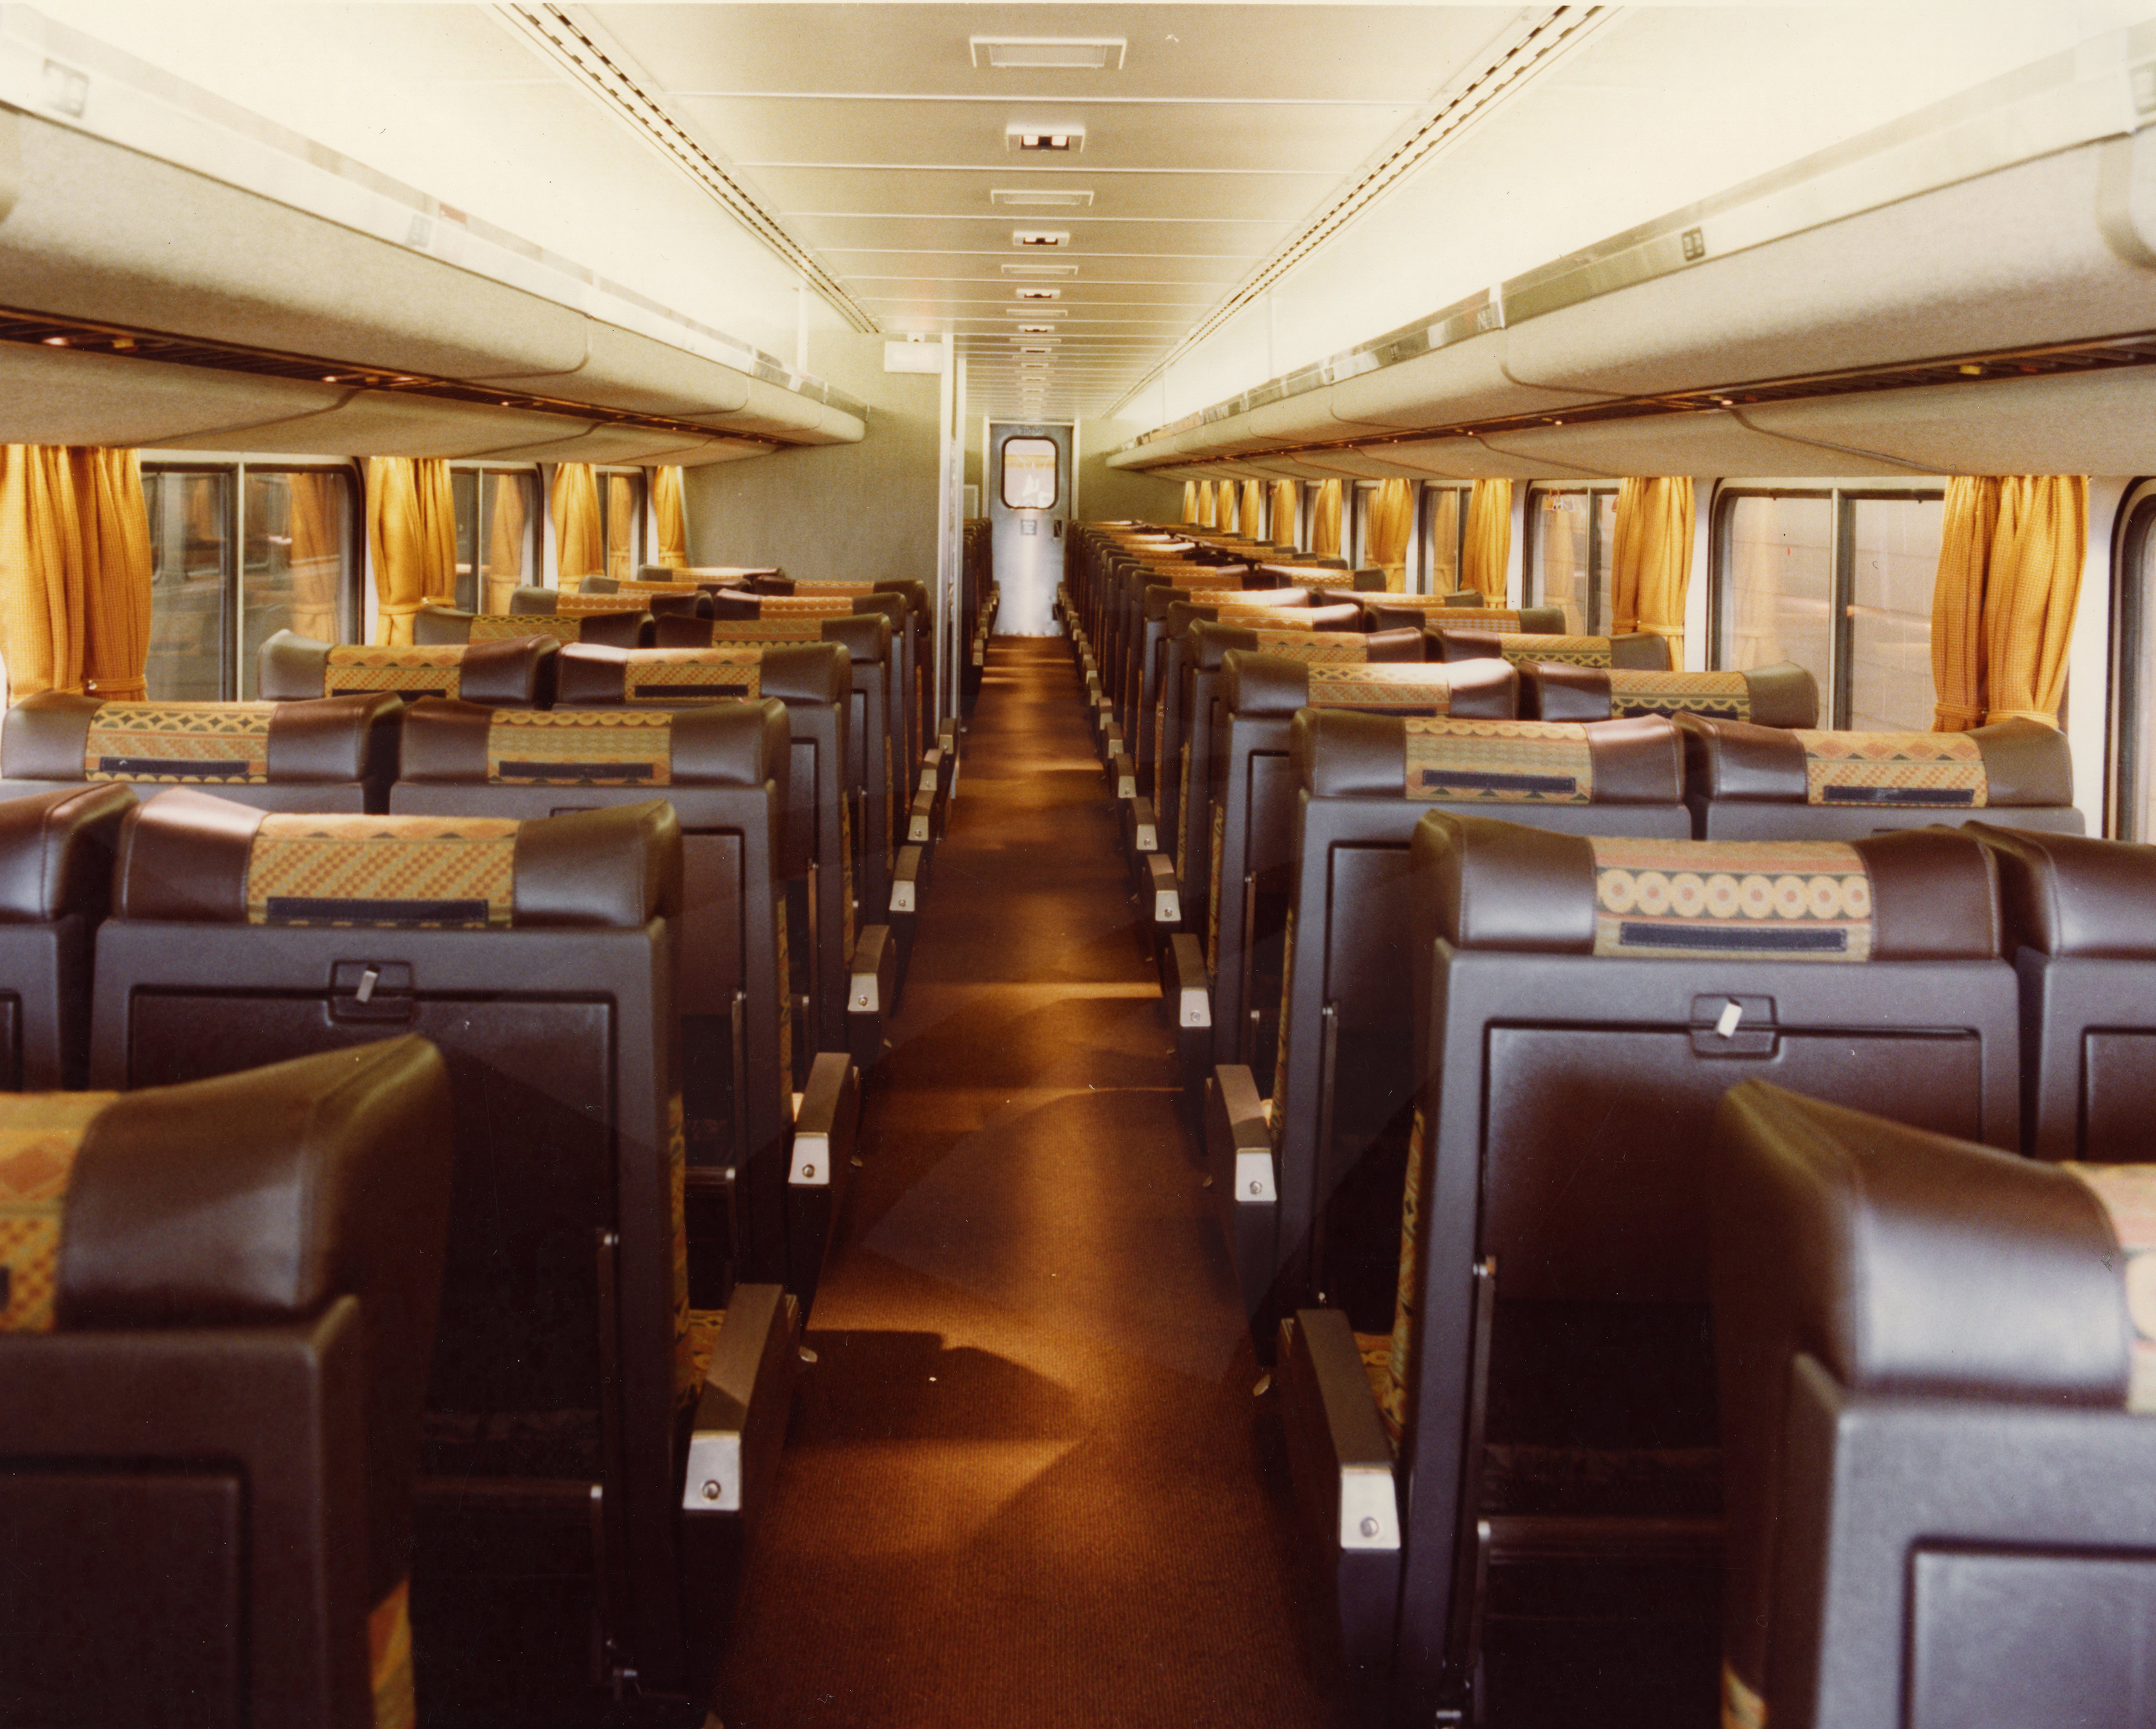 upper level of a superliner i coach 1980s amtrak history of america s railroad. Black Bedroom Furniture Sets. Home Design Ideas